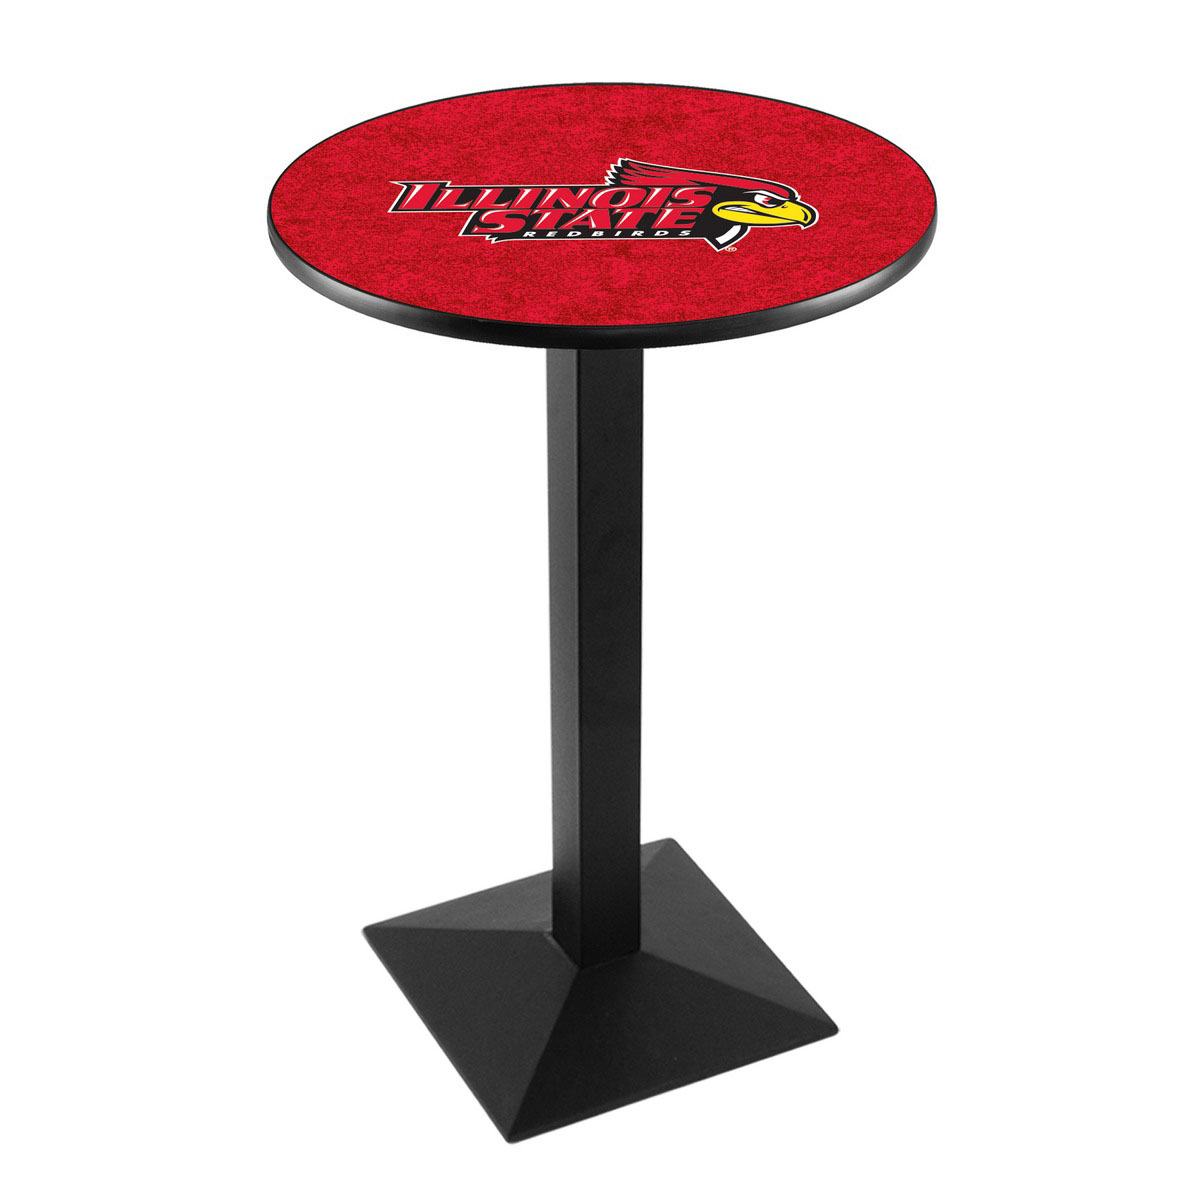 Valuable Illinois State University Logo Pub Bar Table Square Stand Product Photo